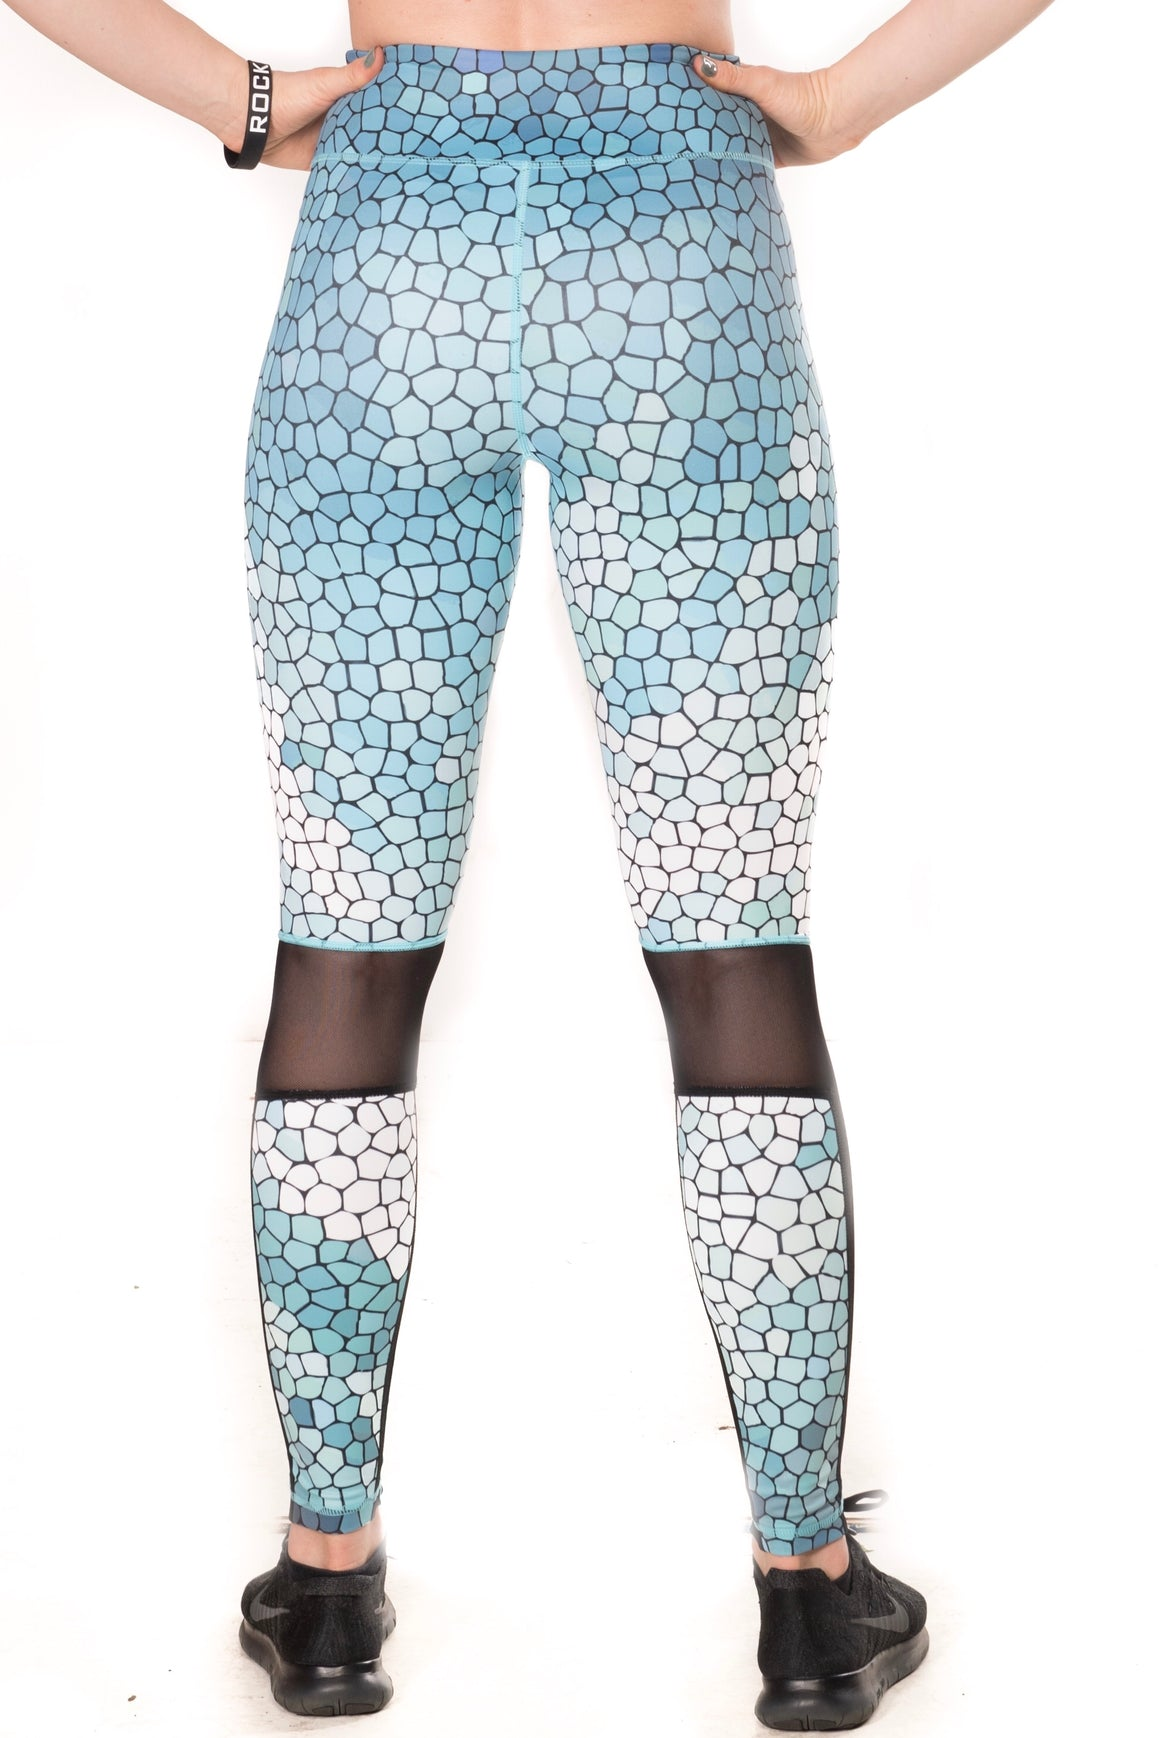 Women's Pro Art Mesh Leggings - Blue